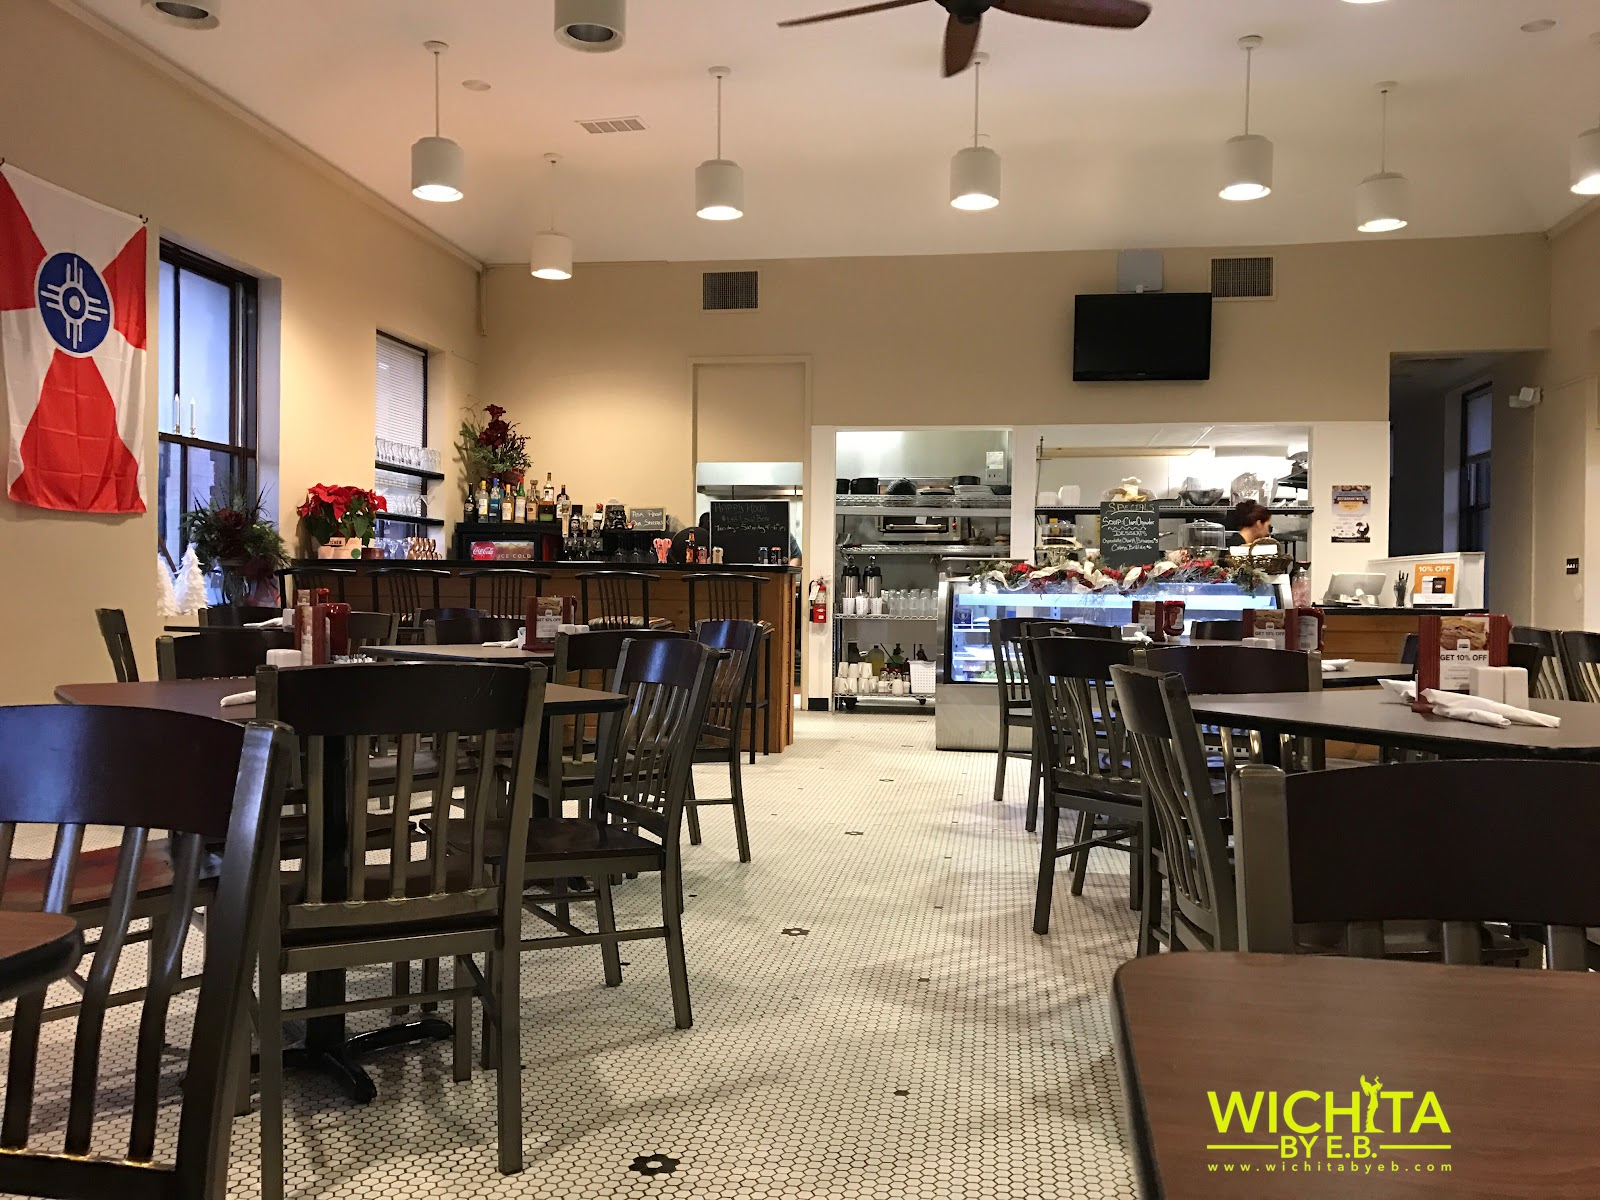 The Kitchen: A Delicious Offering of New American Food – Wichita By E.B.